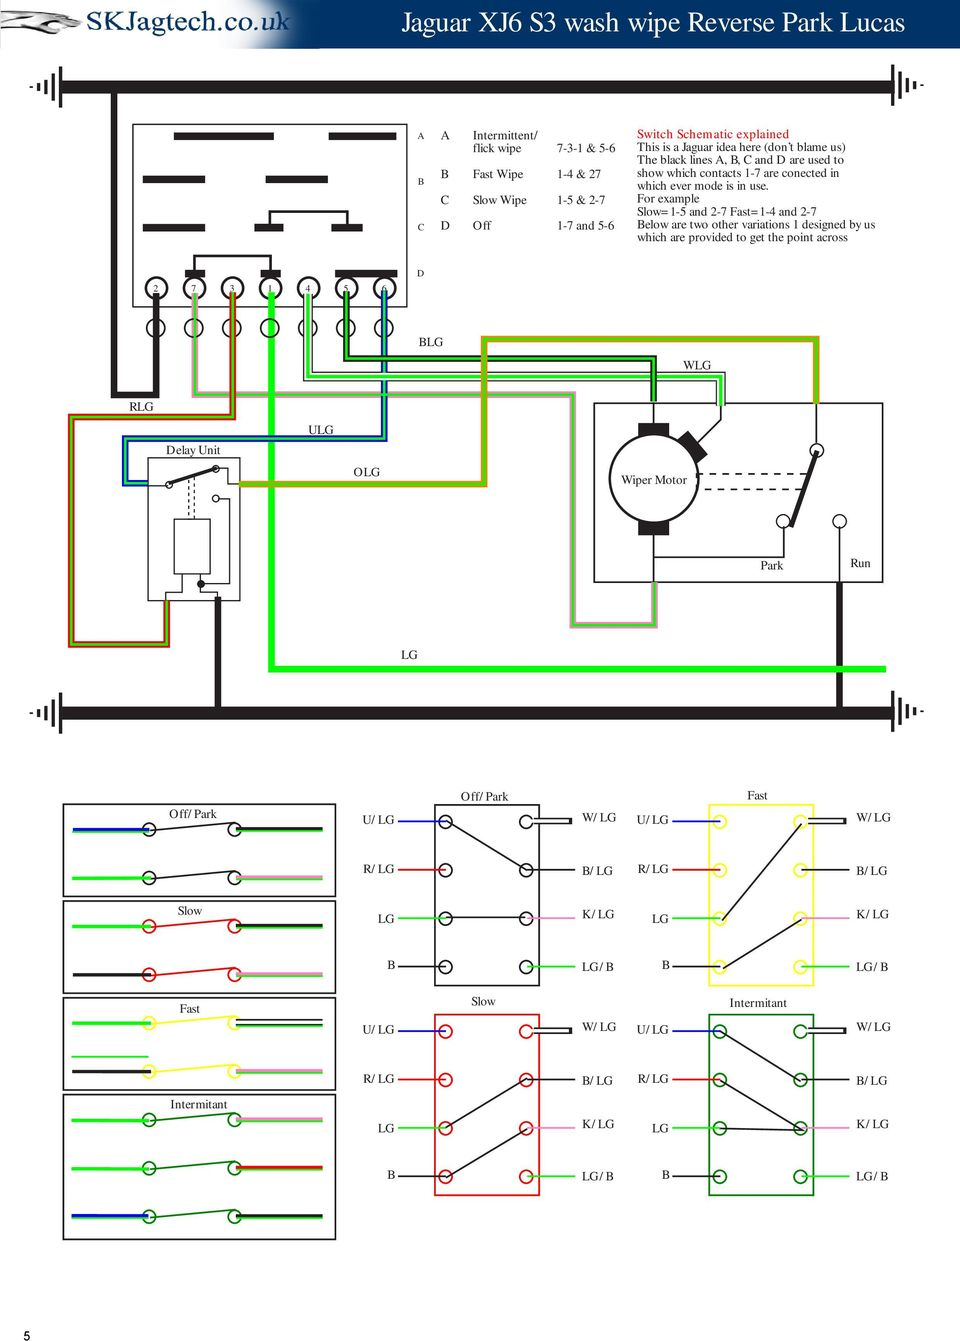 Jaguar xj6 series 3 schematic drawings pdf use for example slow1 5 and 2 7 fast1 buycottarizona Images